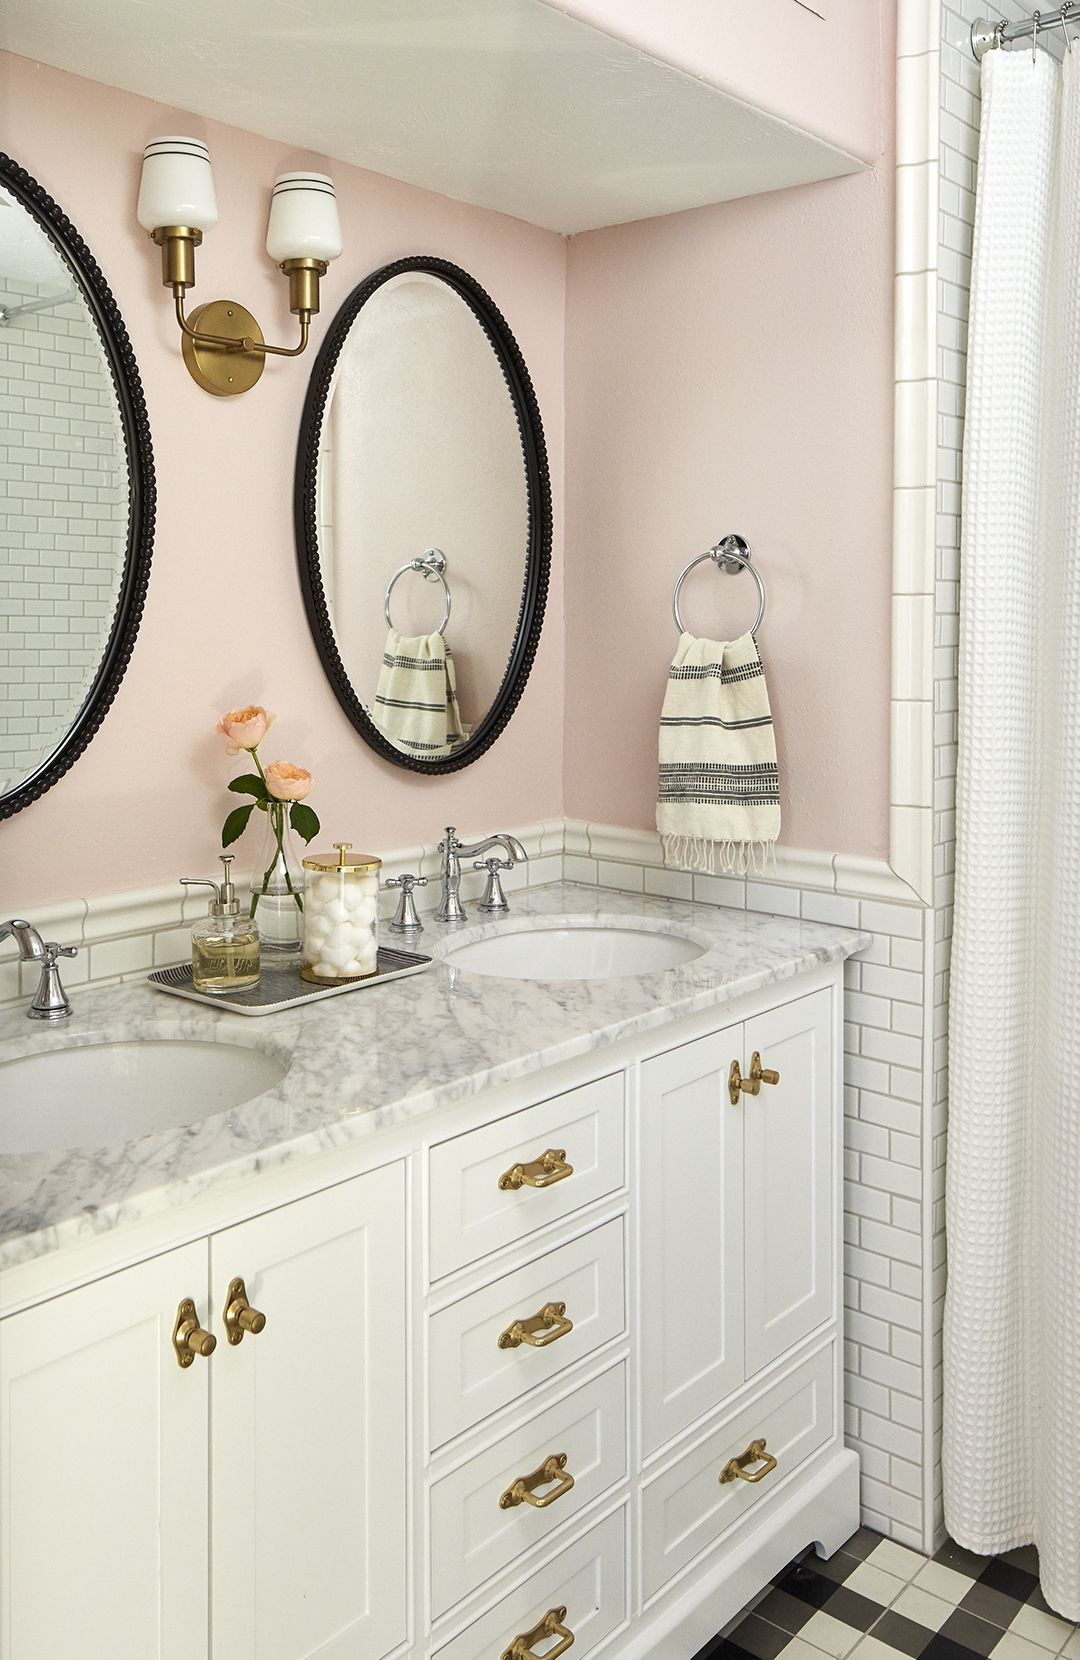 These 8 Bathroom Trends Will Be Everywhere In 2019 Bathroom Trends Bathroom Decor Decorating Bathroom